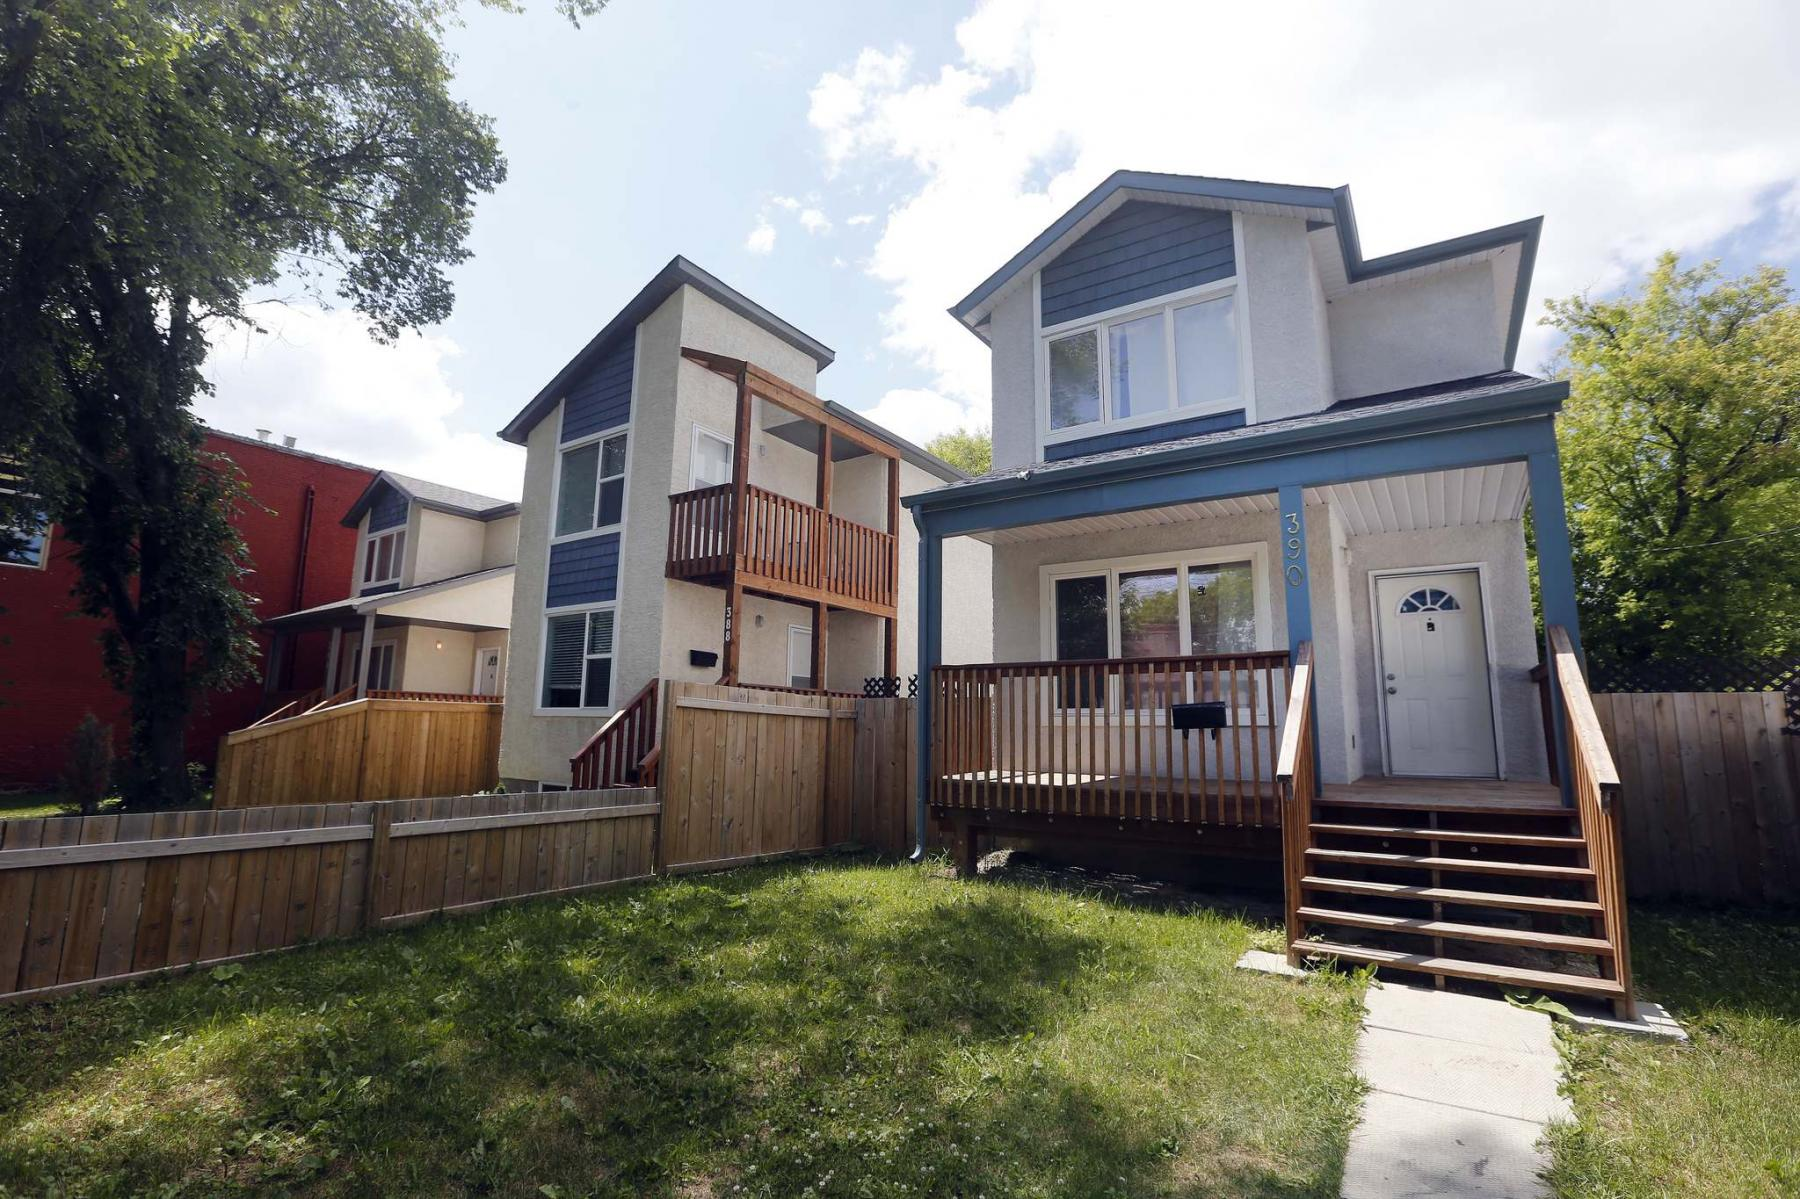 <p>KEN GIGLIOTTI / WINNIPEG FREE PRESS FILES</p><p>Creating much-needed guidelines and properly implementing them will help the City of Winnipeg more consistently base its residential infill decisions on existing development plans.</p></p>